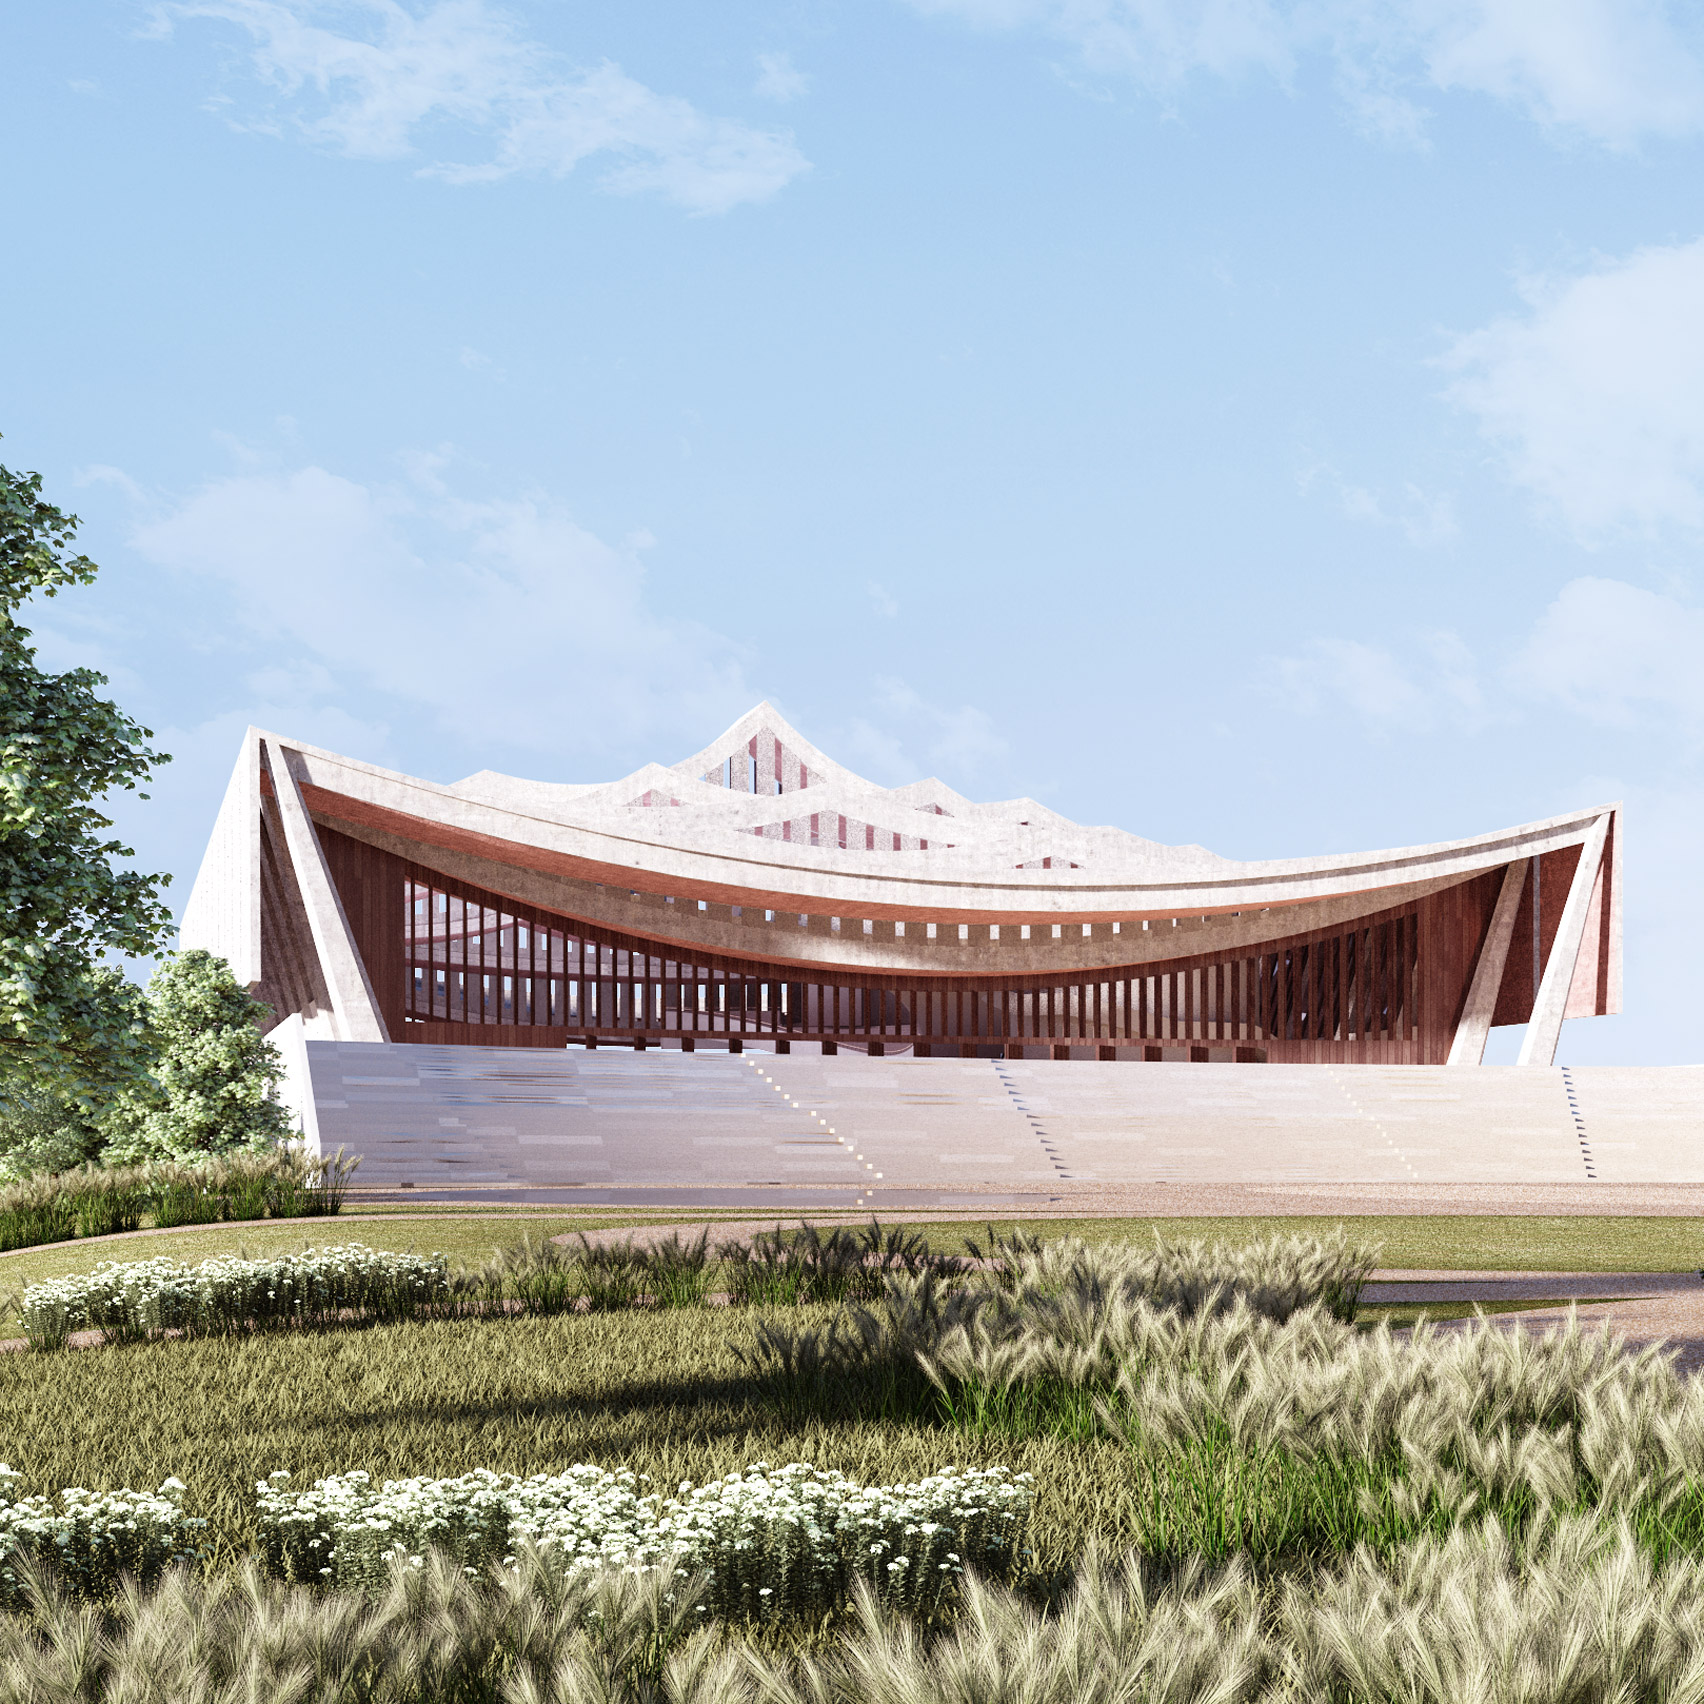 Courtyard Plans David Adjaye Unveils Plans For National Cathedral Of Ghana